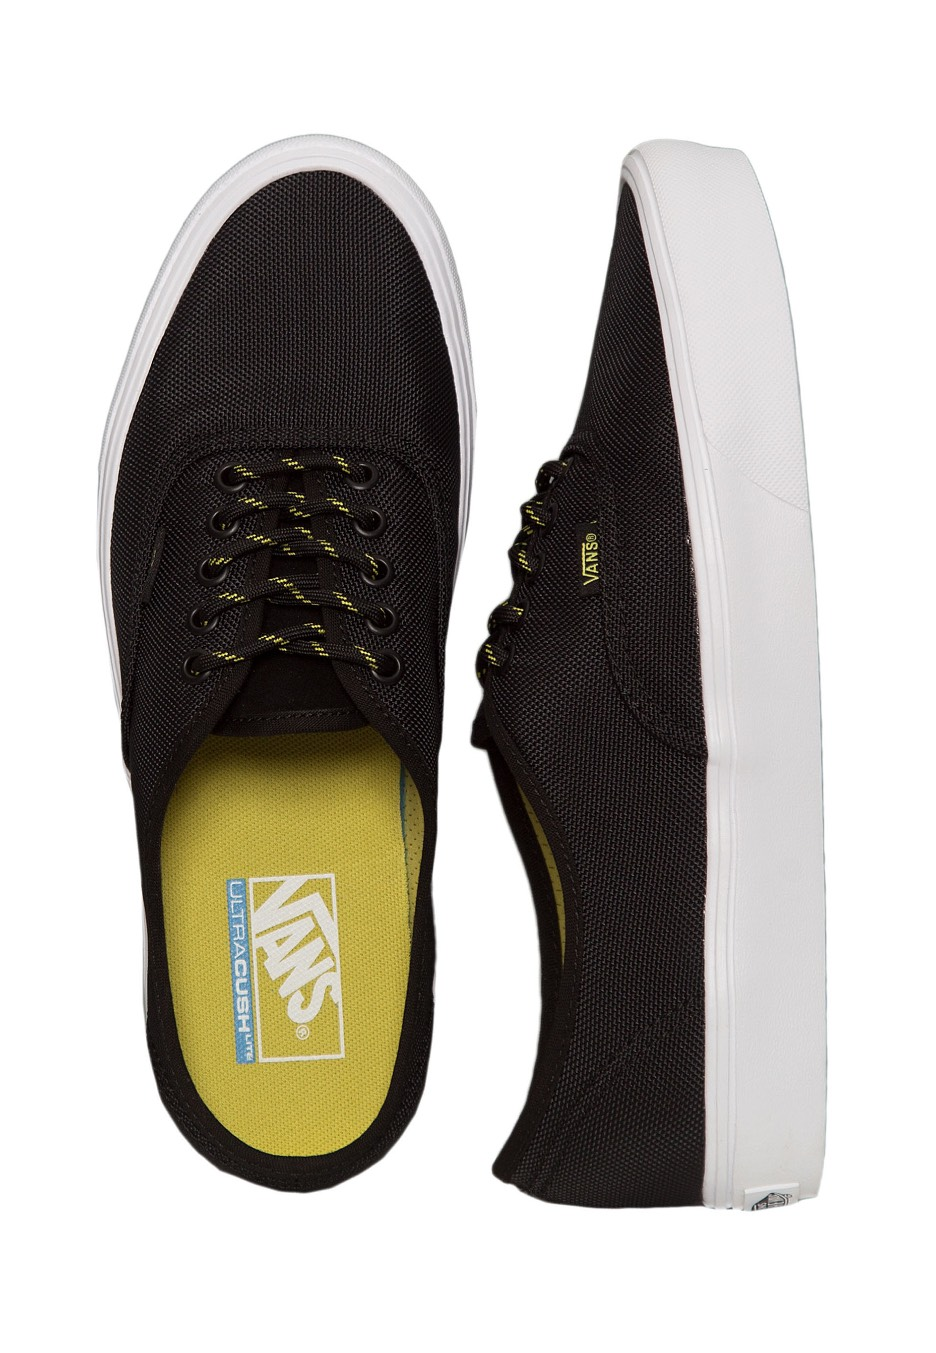 bb59298c83430d Vans - Authentic Lite Ballistic Black Celery - Shoes - Impericon.com UK